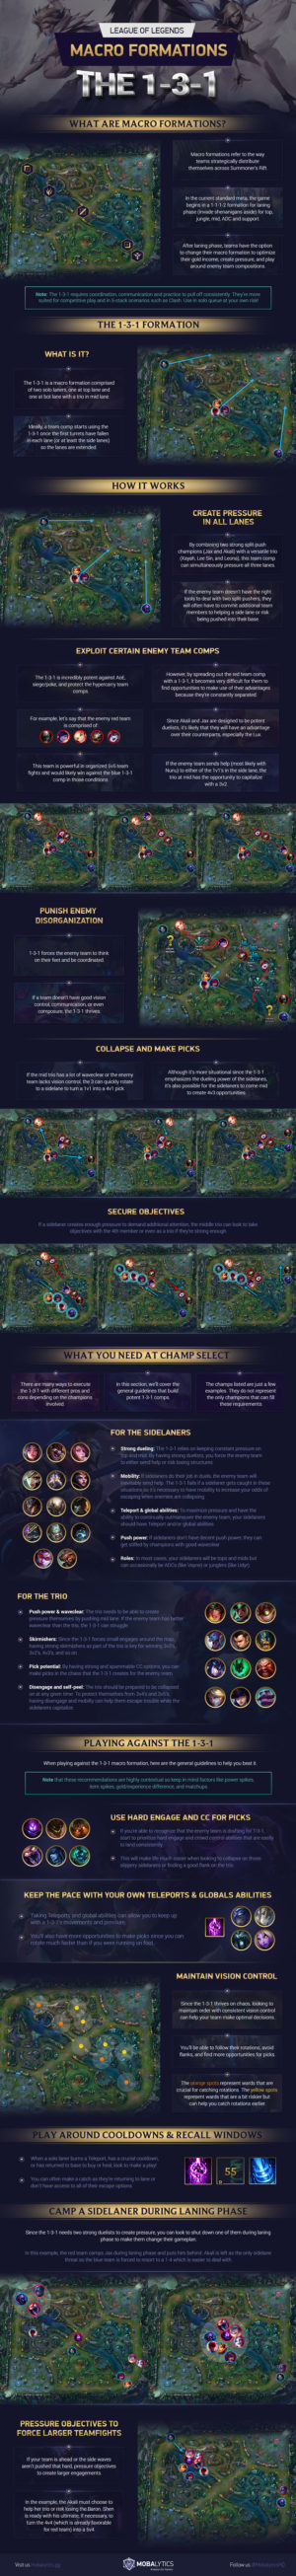 League of Legends Macro Formation: The 1-3-1 (Infographic)